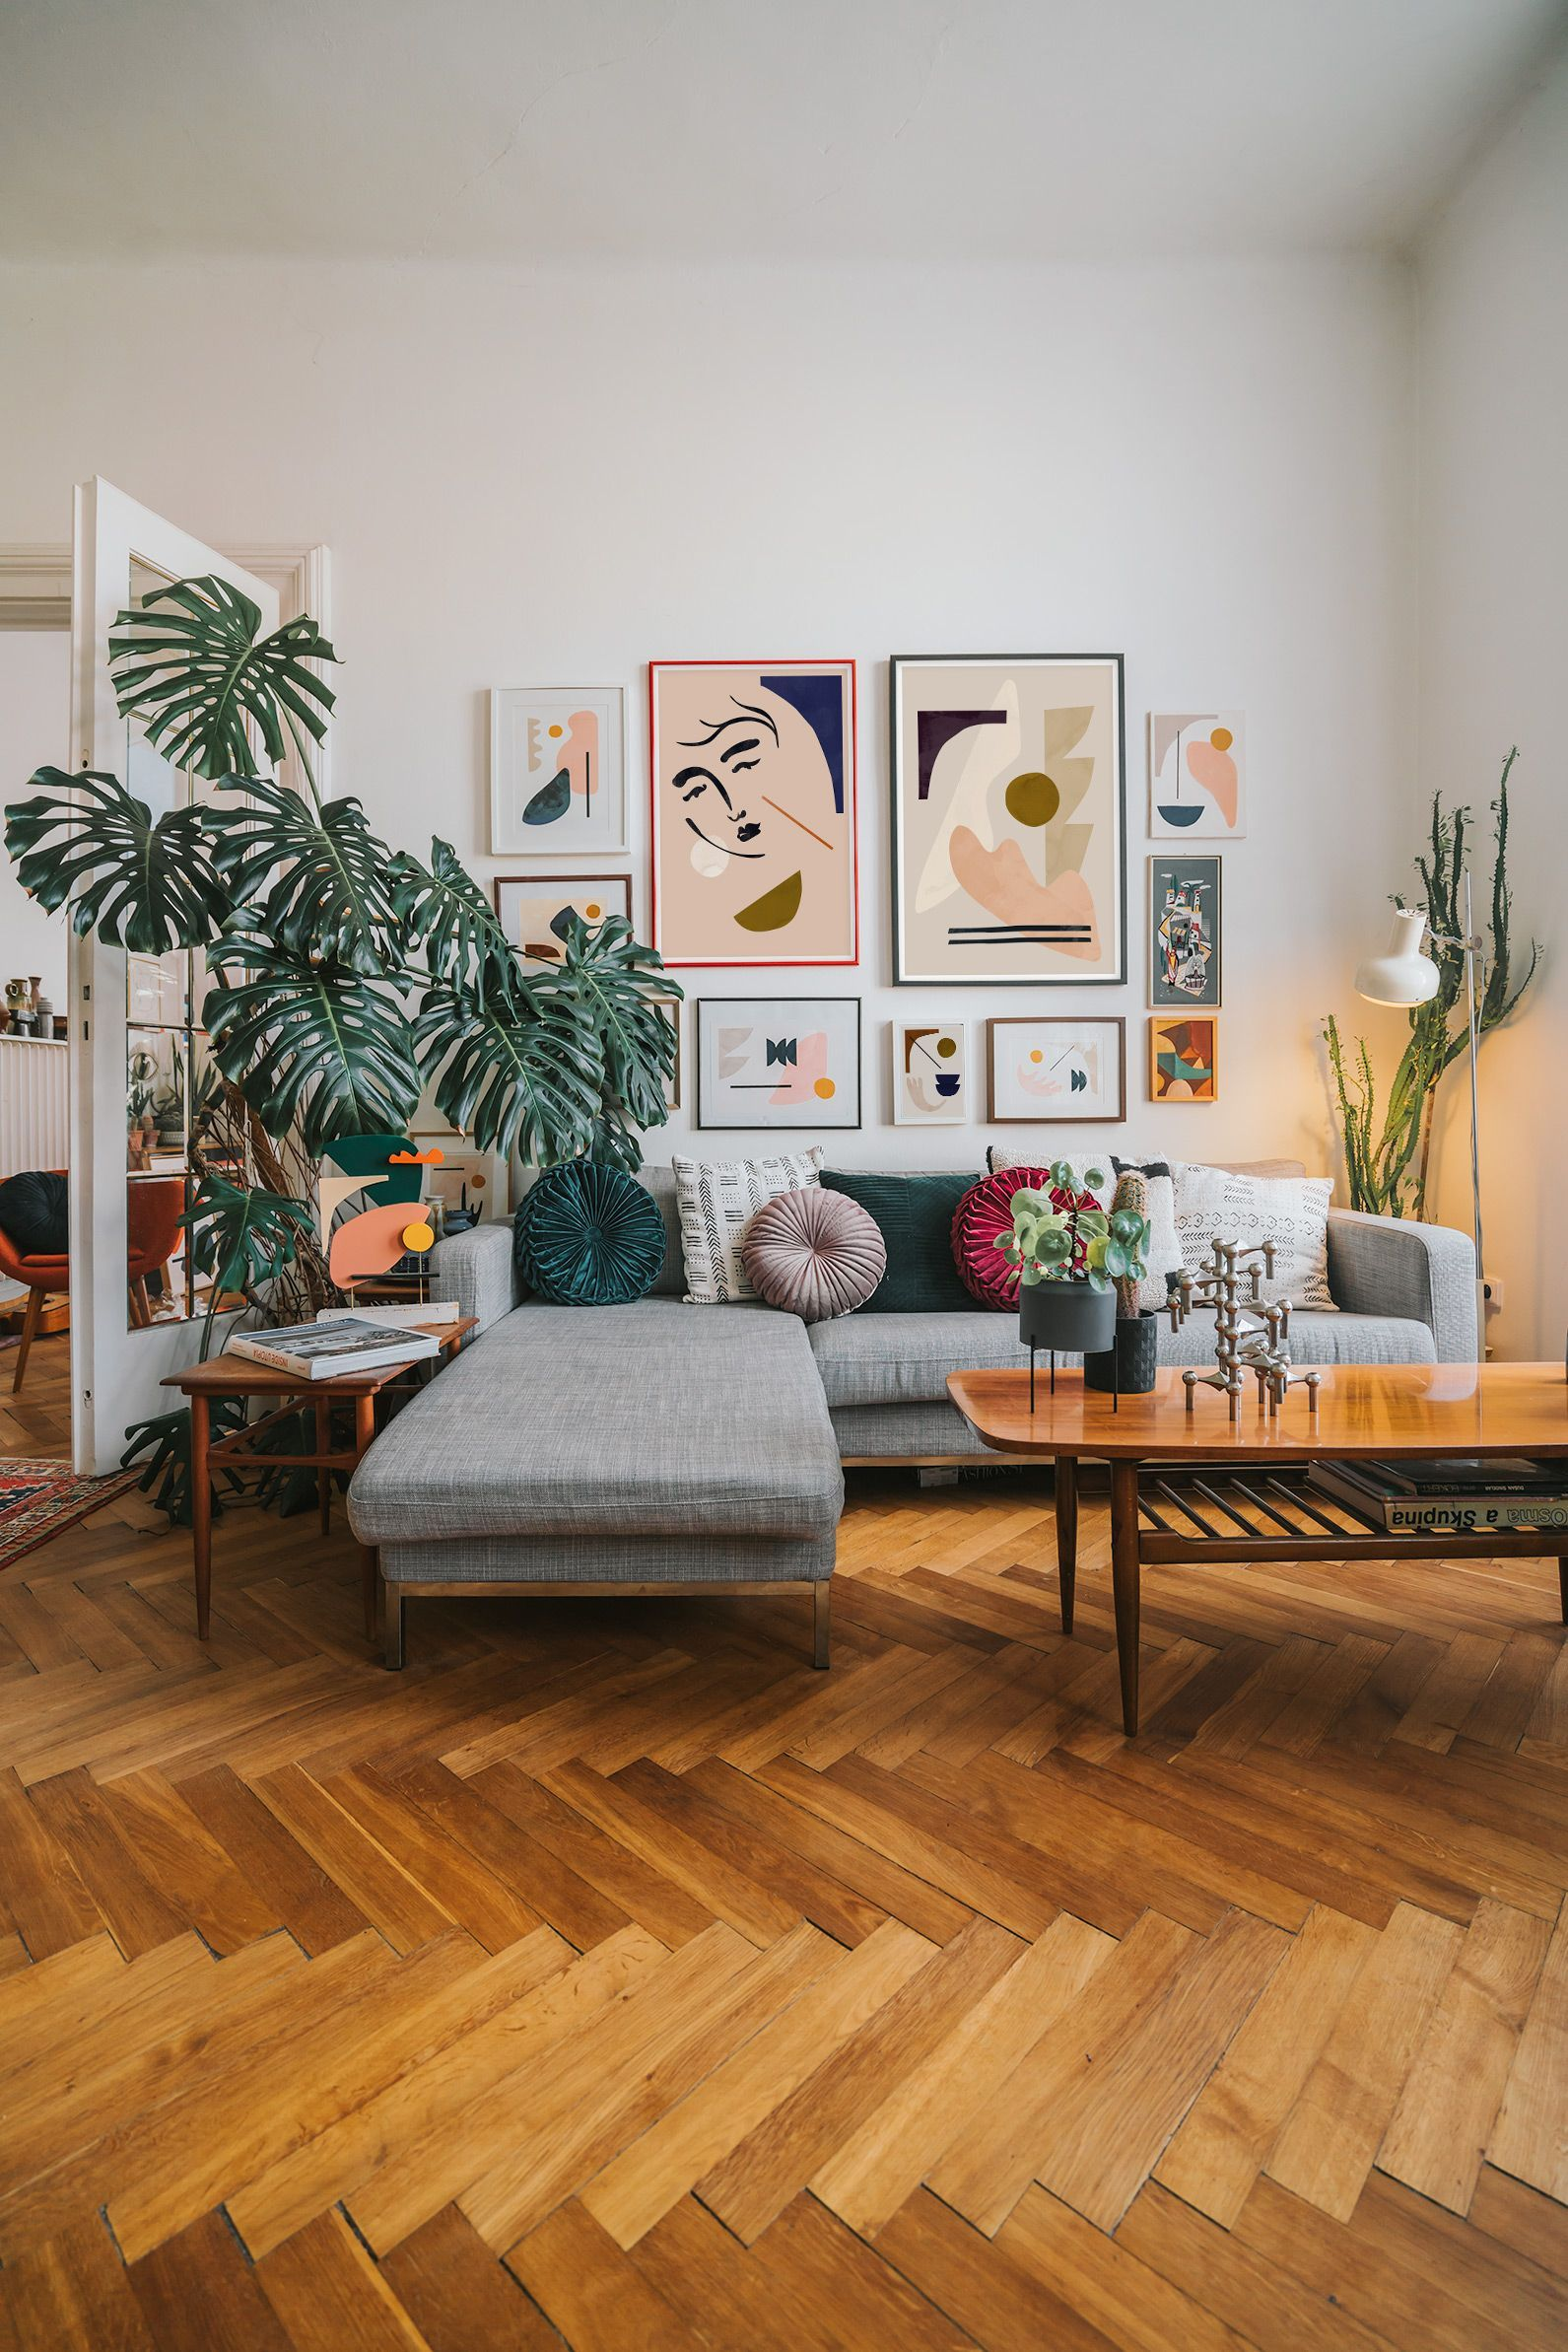 Modern Gallery Wall At Cozy Living Room Bohowohnen The Home Of Artist Jan Skacelik Home Decor Home Living Room Living Room Decor Living room surrealsim realism